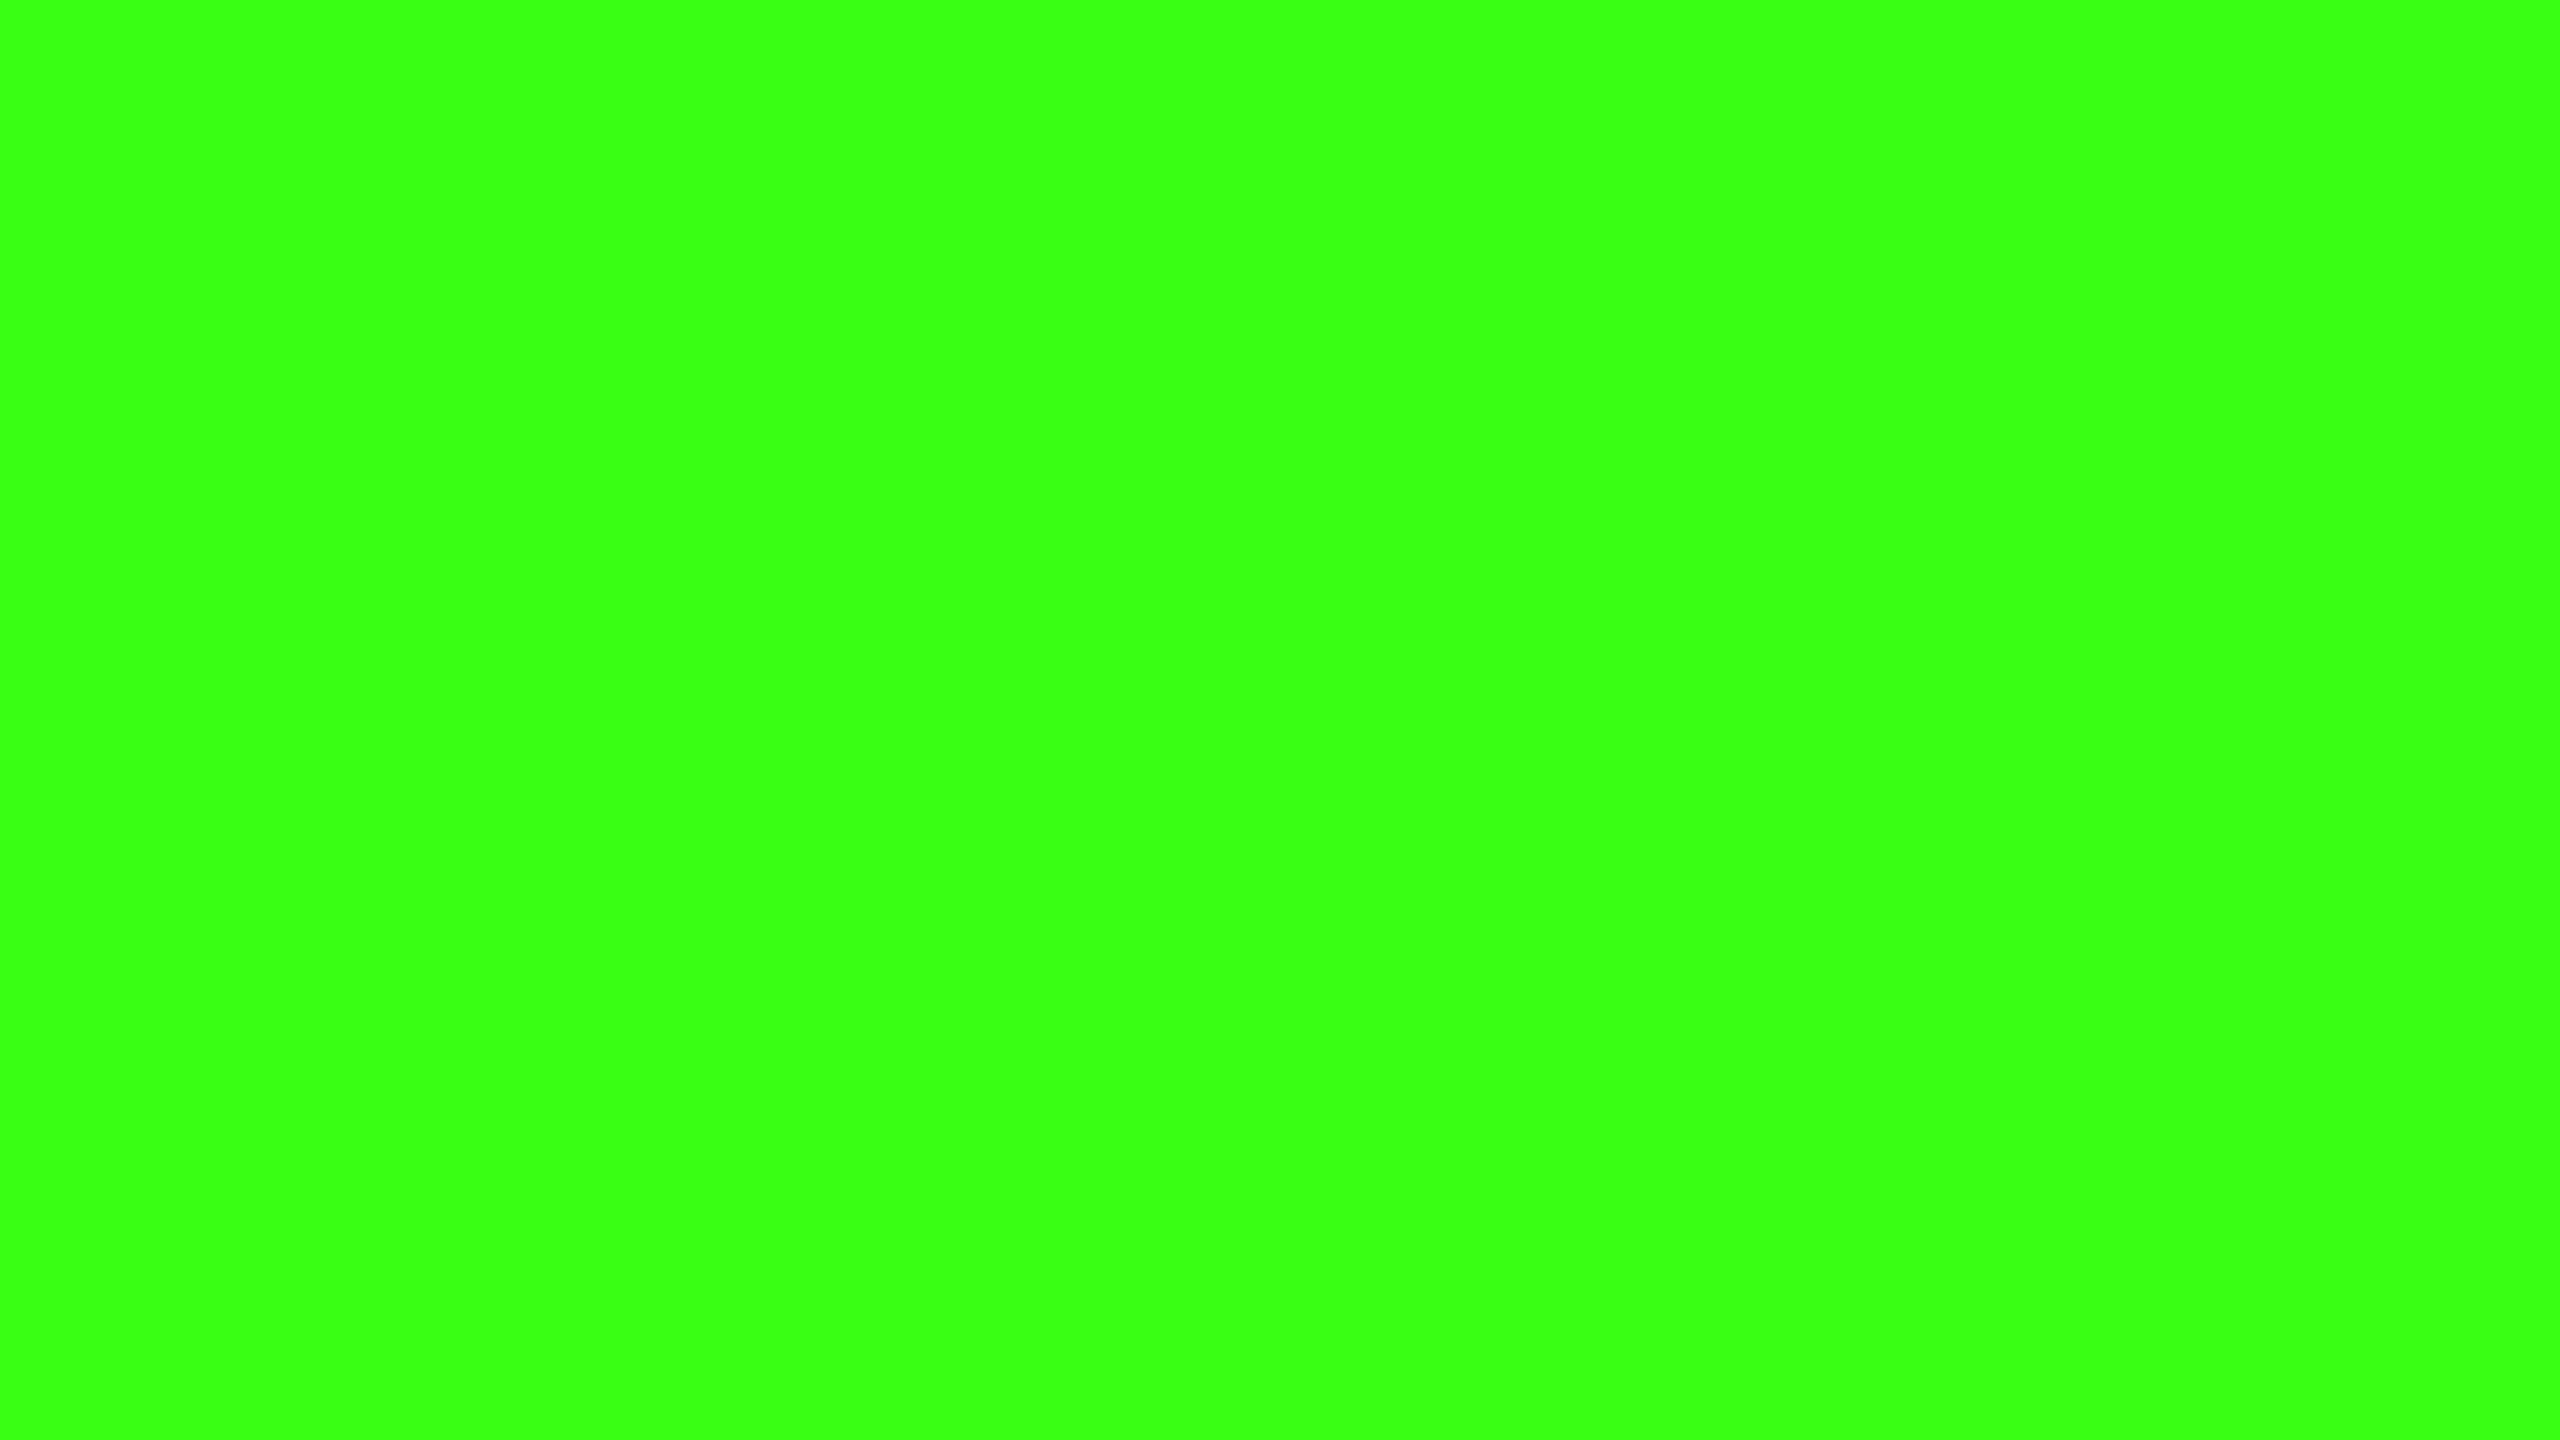 green neon background - photo #6